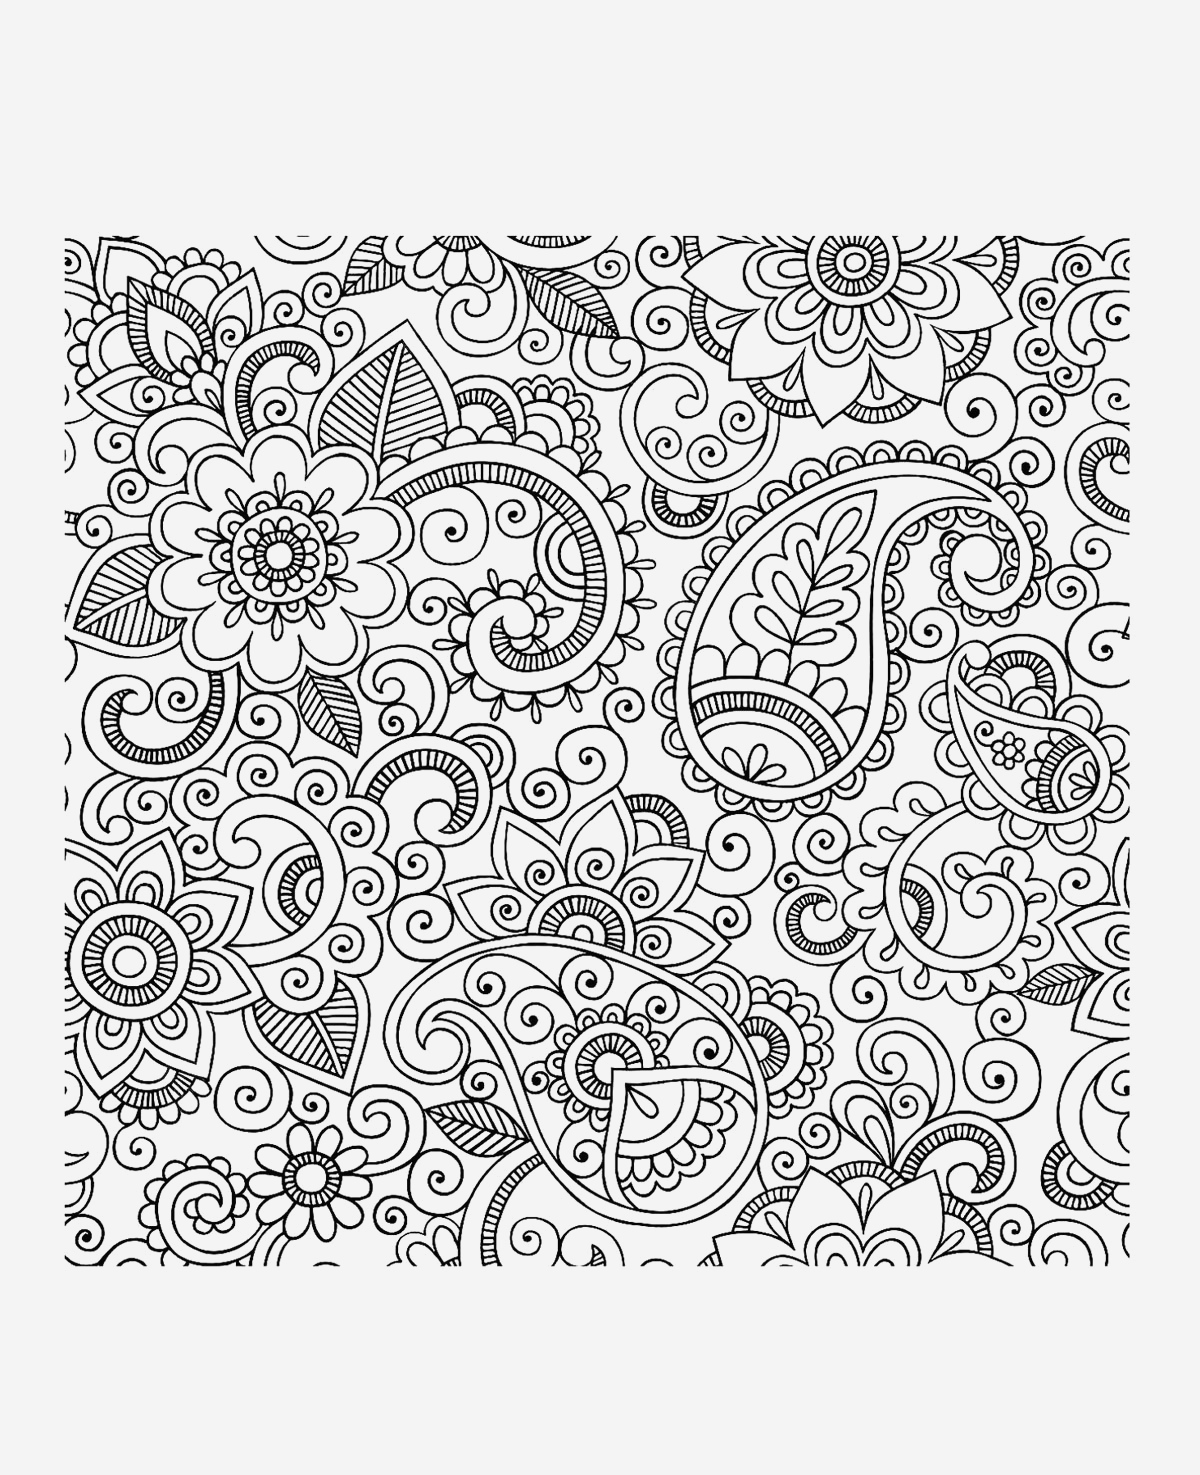 Coloriage Anti Stress Adulte à Imprimer Elegant Art therapy 108 Relaxation – Printable Coloring Pages Of Coloriage Anti Stress Adulte à Imprimer